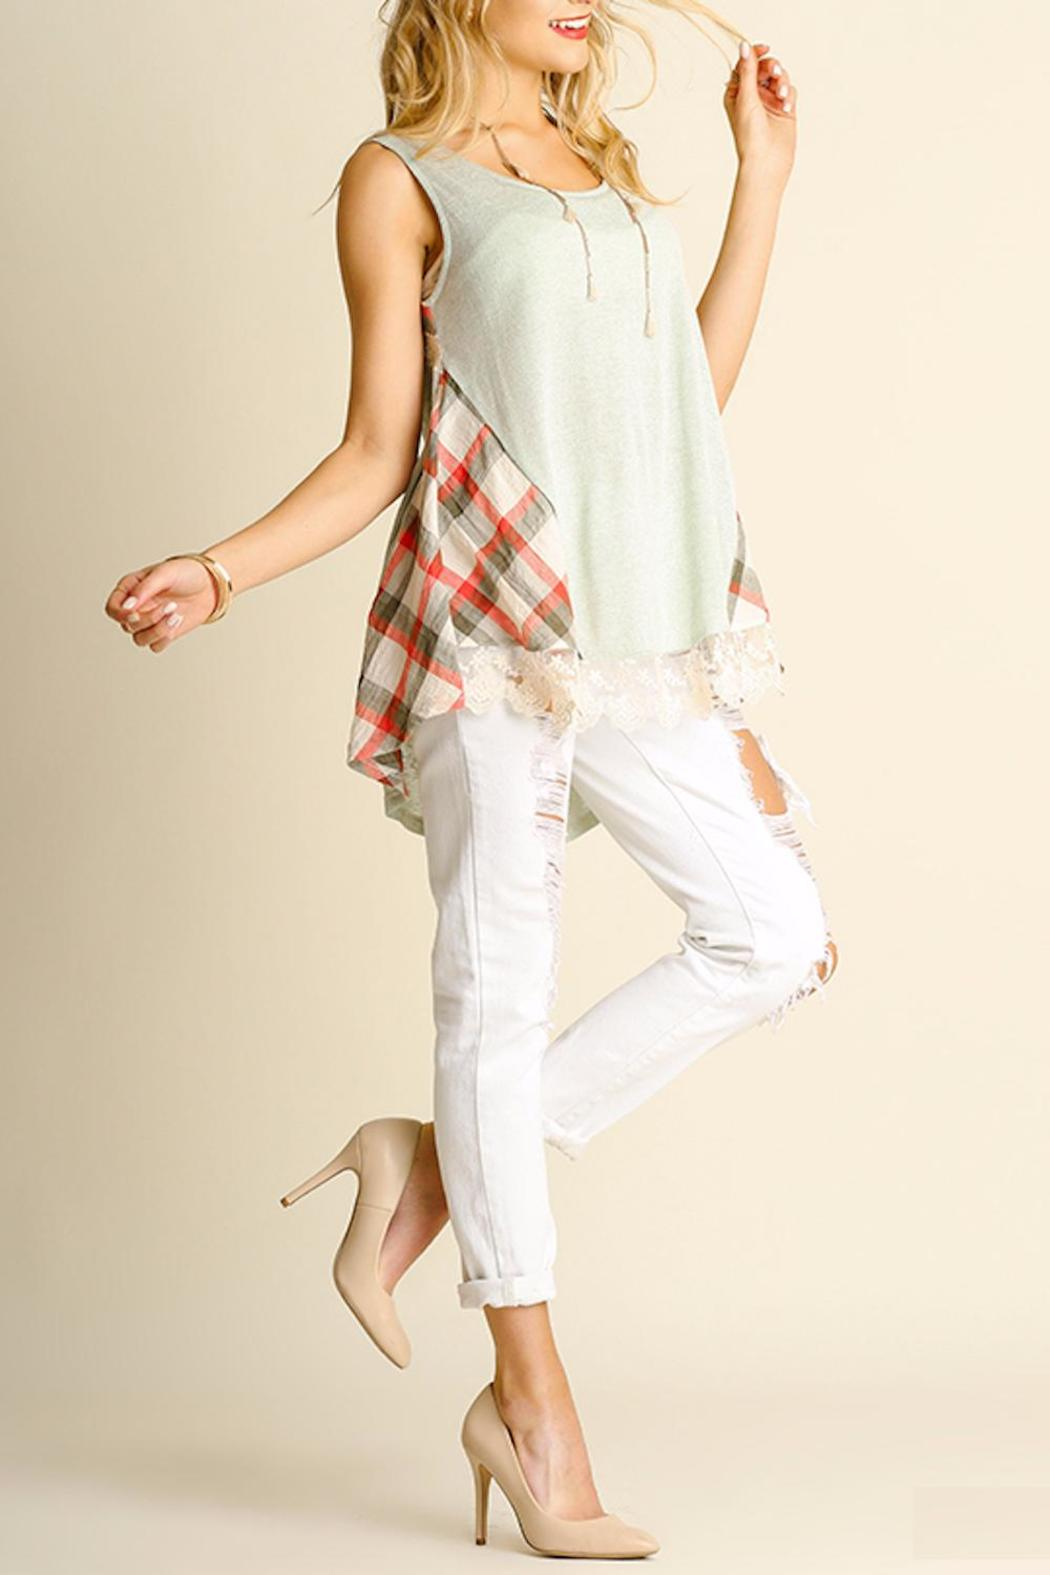 People Outfitter Beautiful Isabella Tank Top - Side Cropped Image